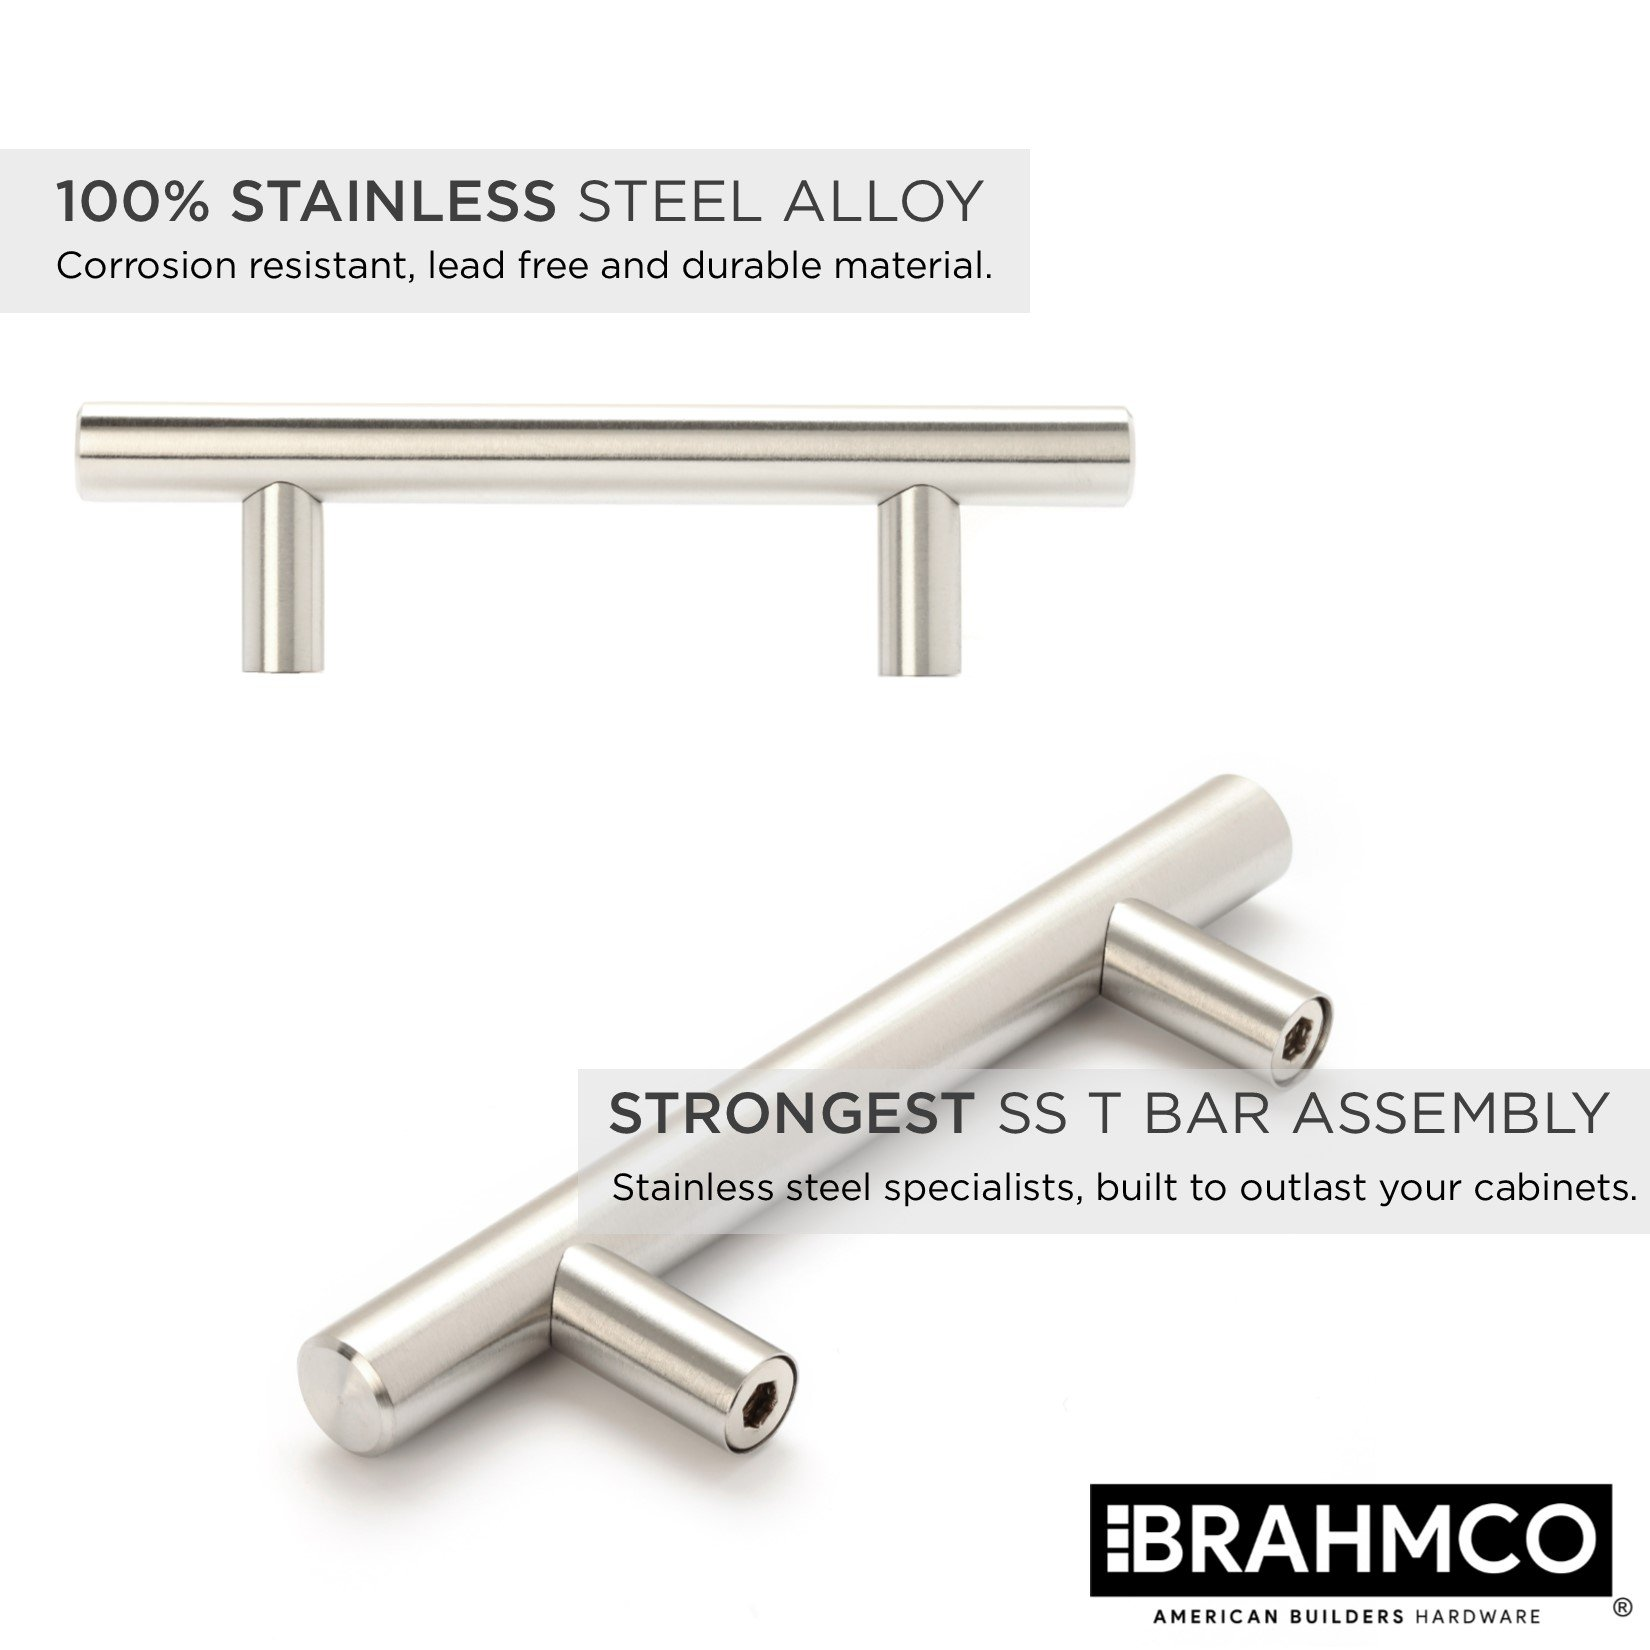 30 Pack | 5'' Stainless Steel T Bar Cabinet Pulls: 3 Inch Hole Spacing | Brahmco 180-5 | Modern Euro Style Brushed Satin Nickel Finish Kitchen Cabinet Handles Hardware/Drawer by Brahmco (Image #8)